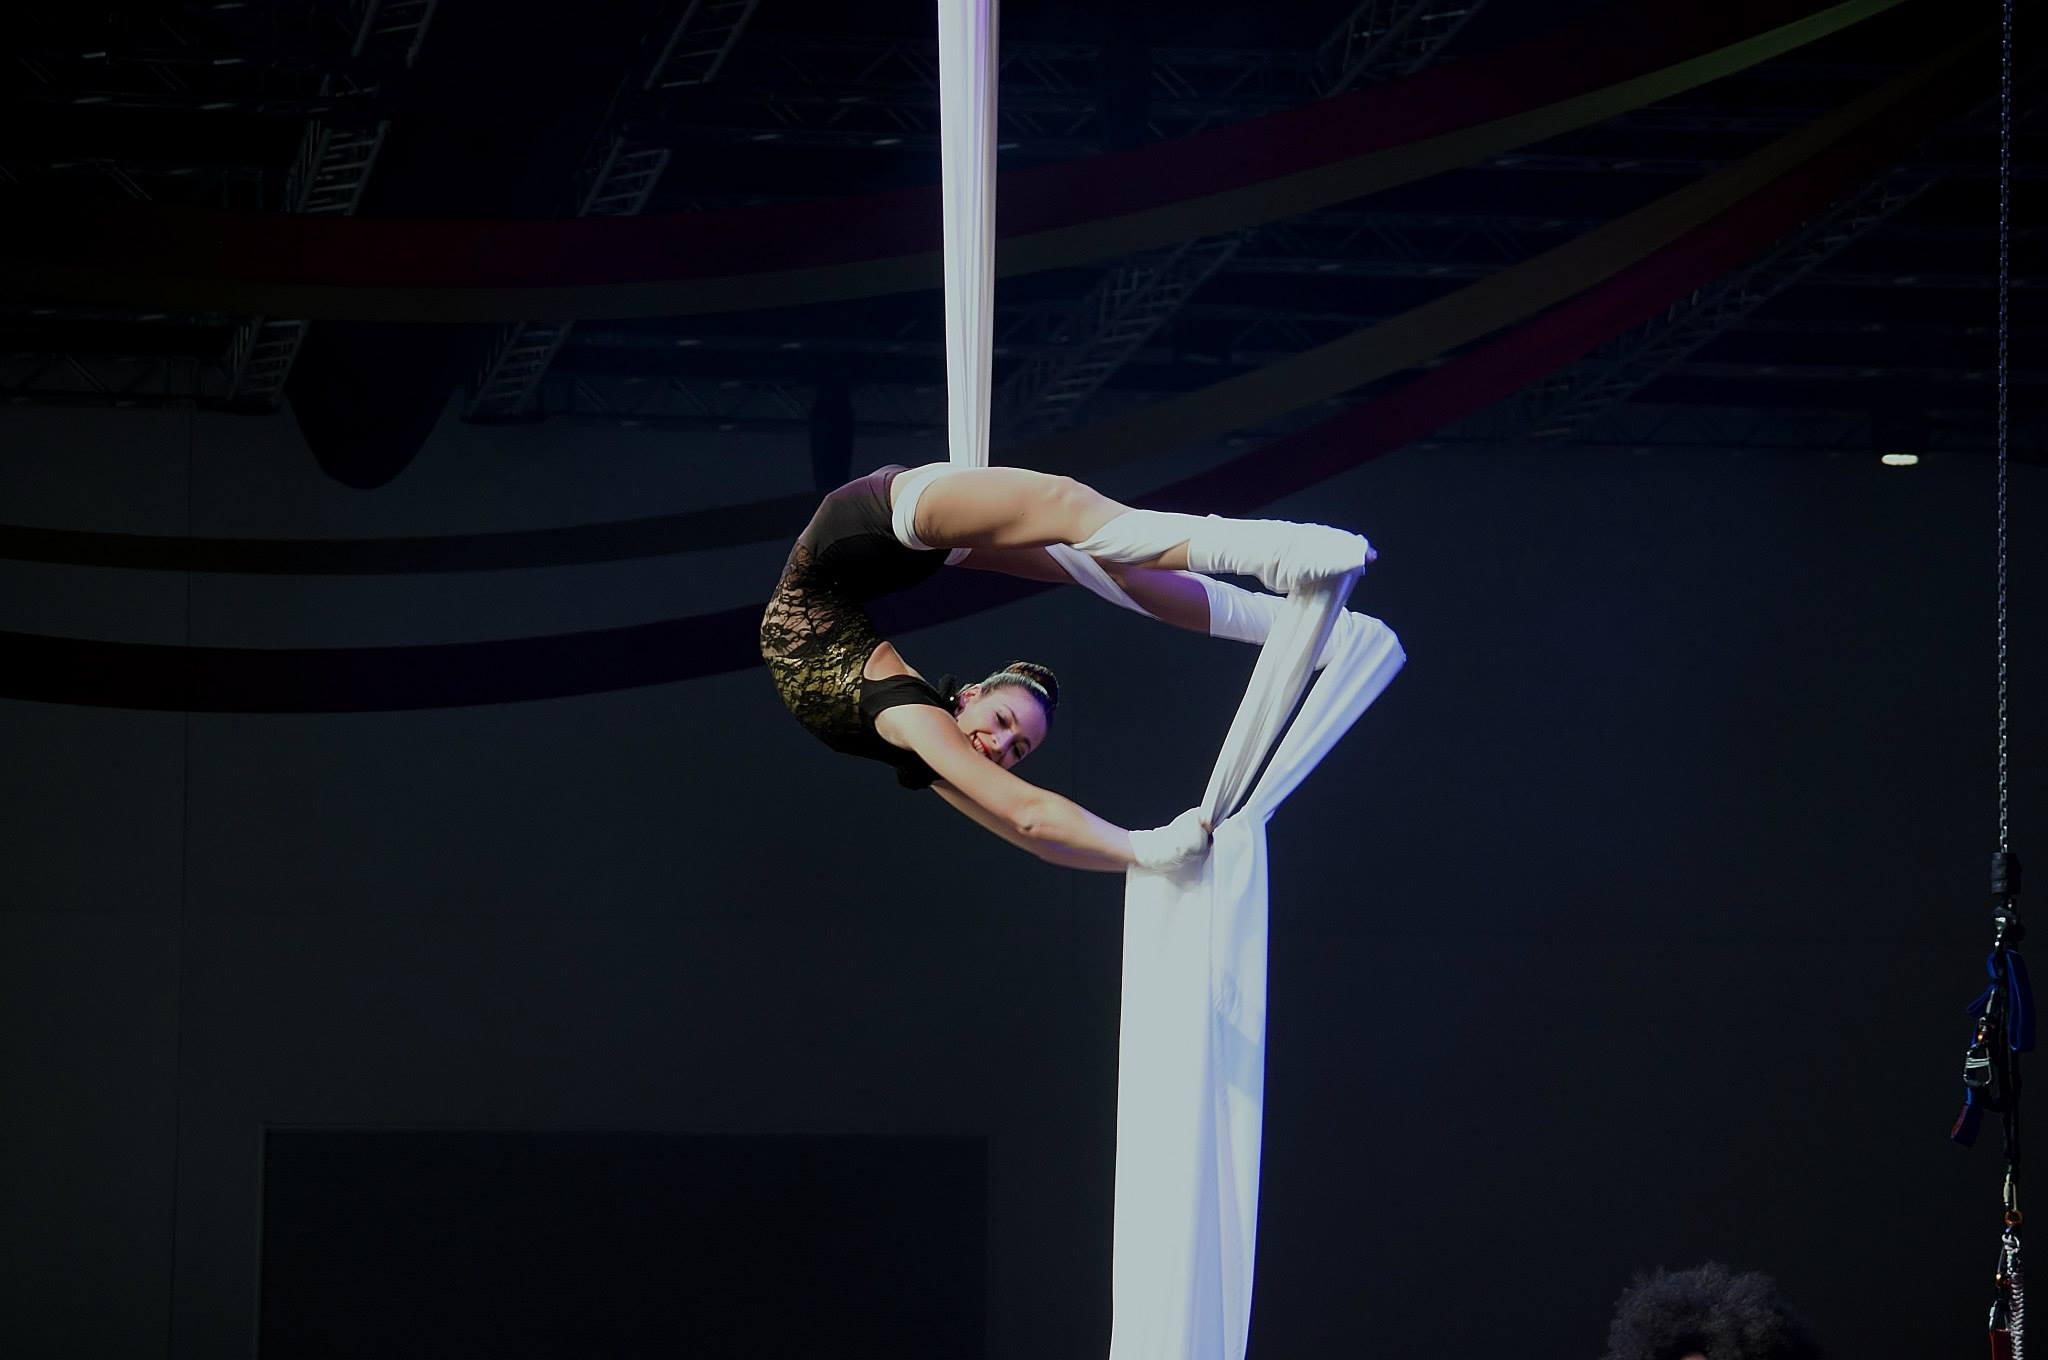 Aerial Silks by Majestic